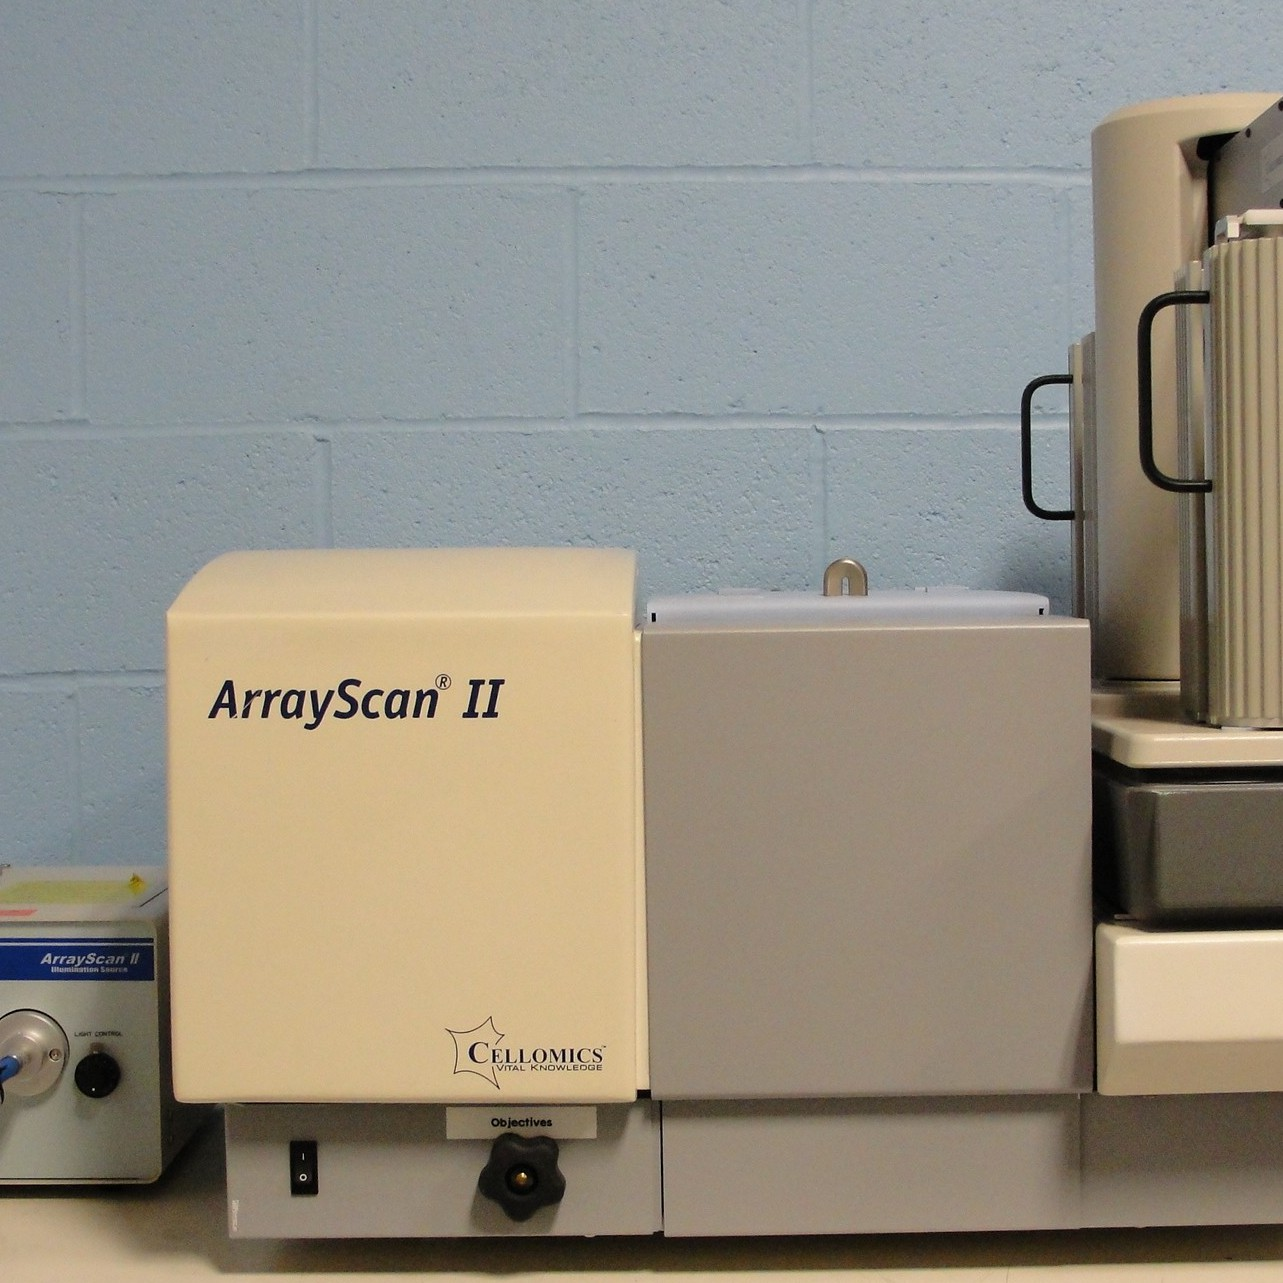 Cellomics ArrayScan II HCS/High Content Screening System Image